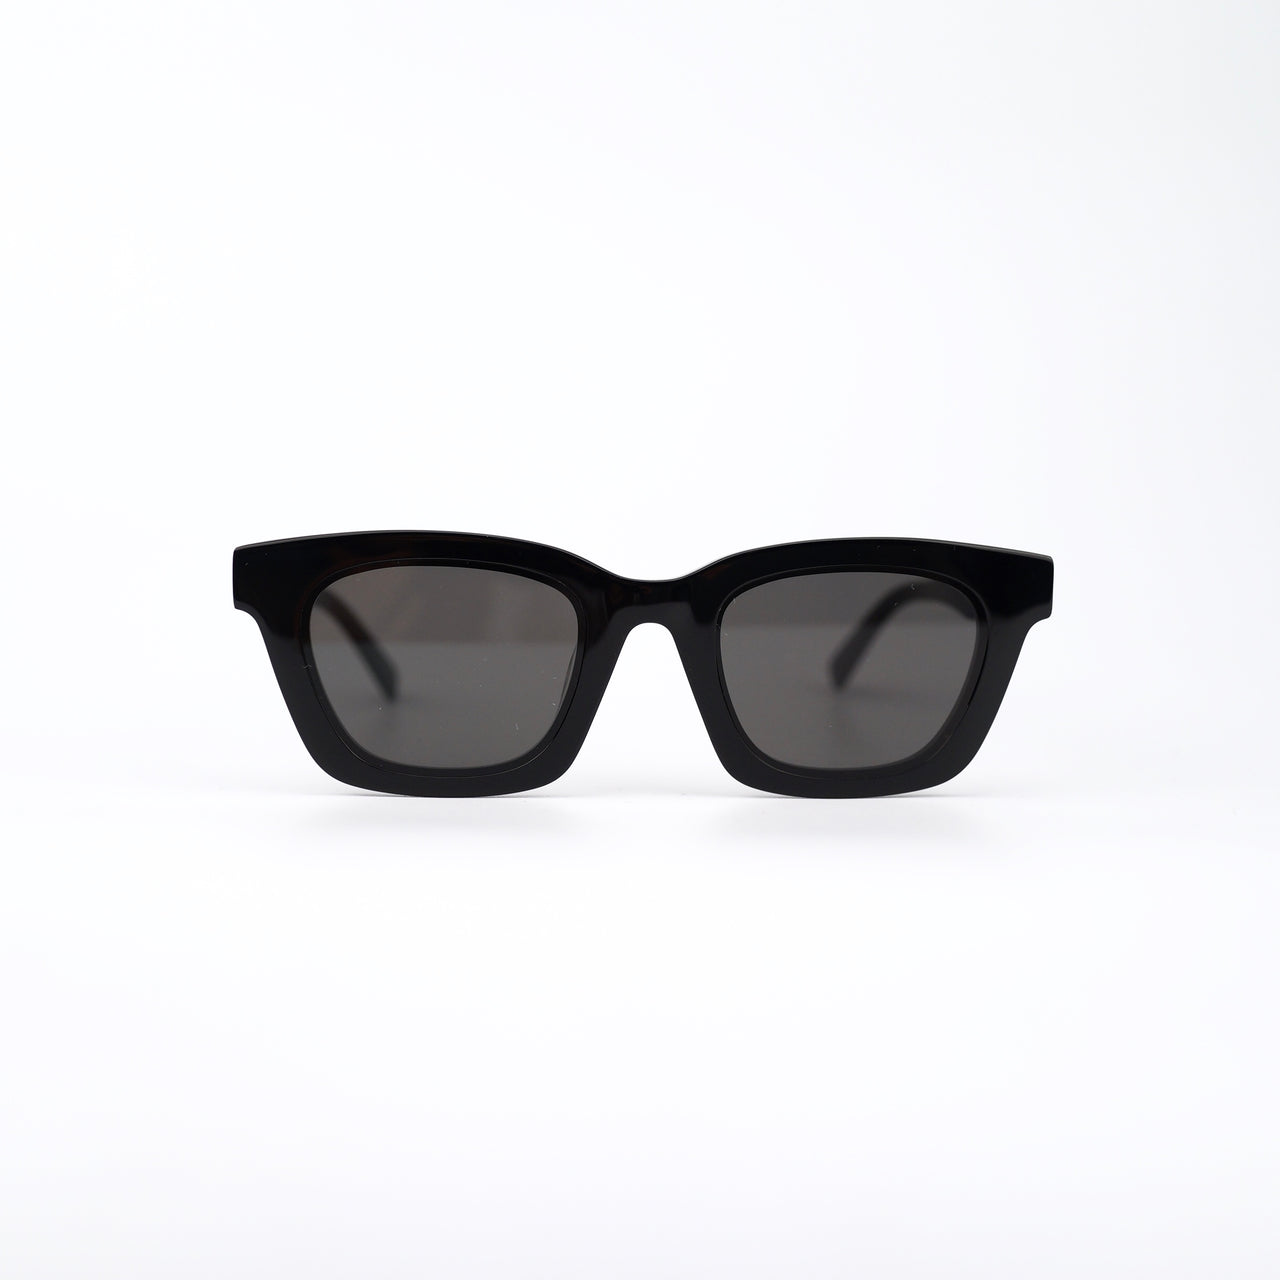 Black Acetate Sunglasses with Dark Gray Lenses